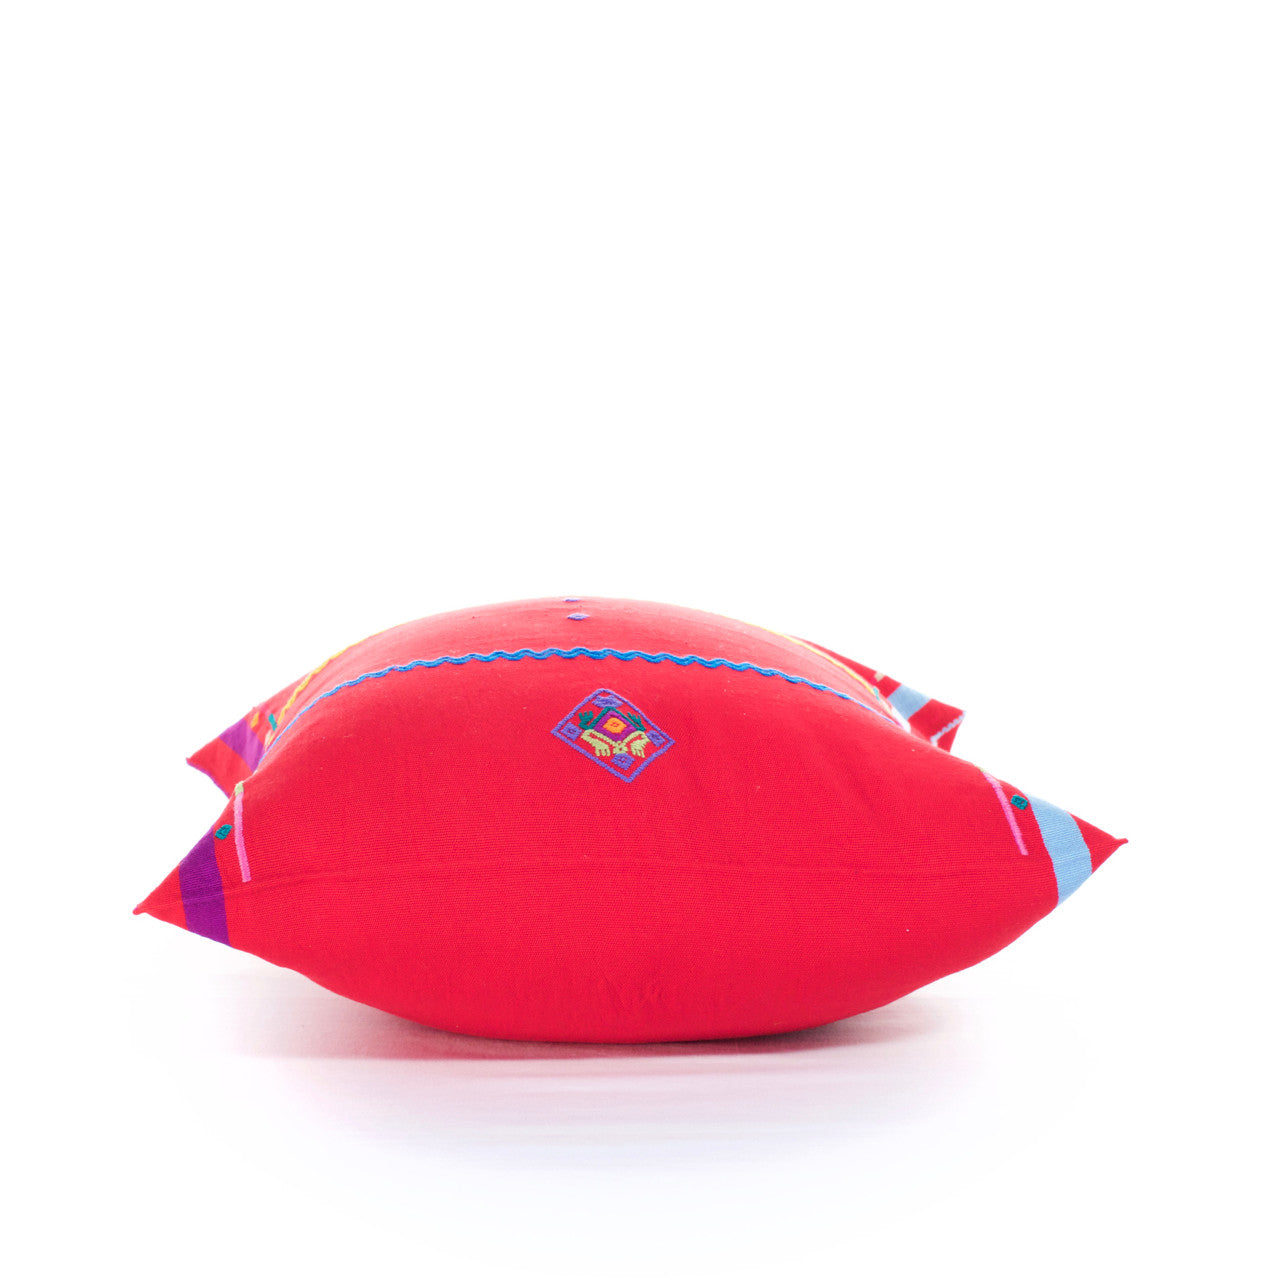 Sapo Cushion - Cielo Collective - Red with Purple & Pale Blue Stripe - 3